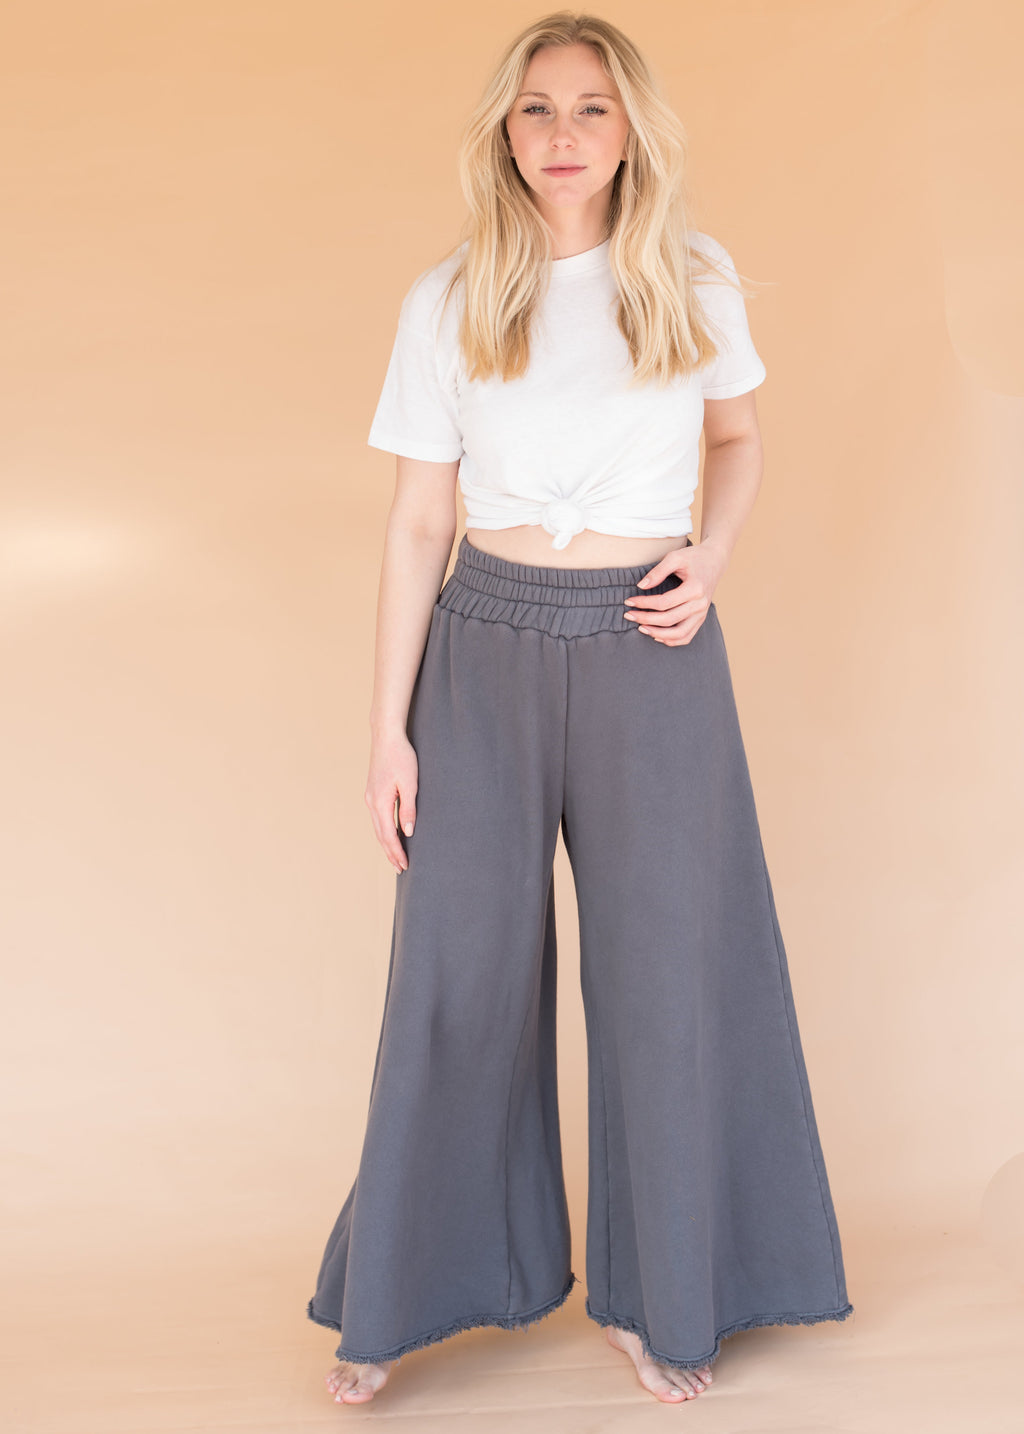 Women's High-Waisted Wide Leg Grey Sweatpants - Shark Grey